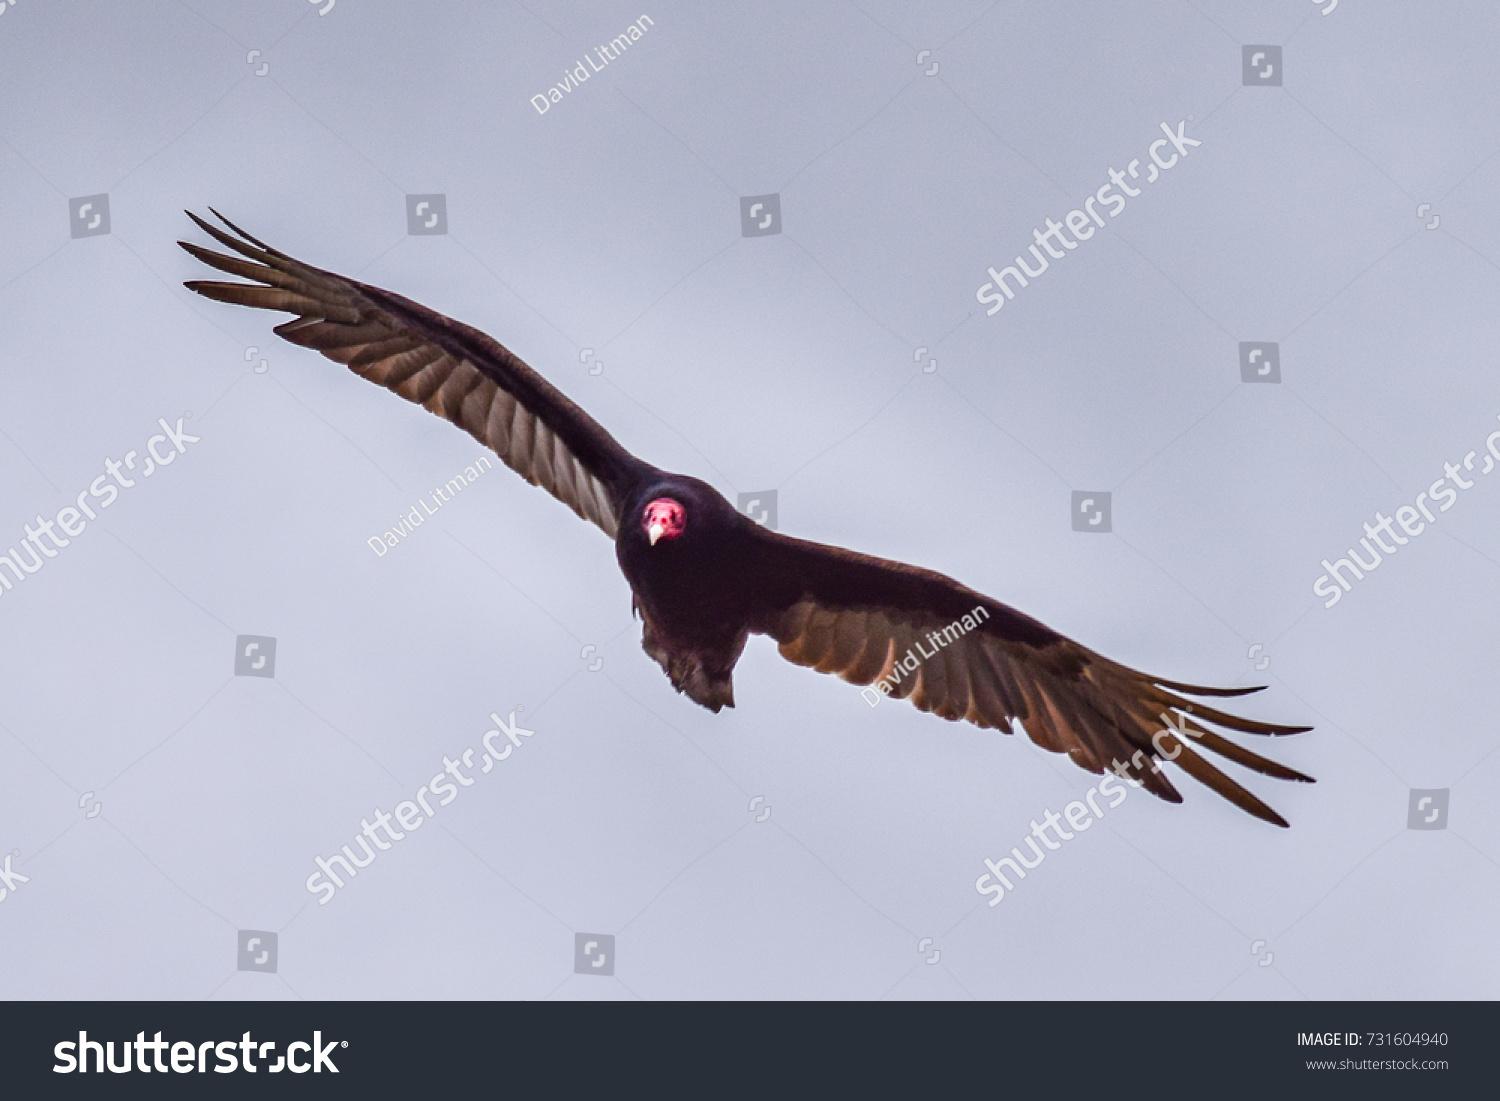 A large Turkey Vulture flying, circles overhead, searching for carrion to feast on.